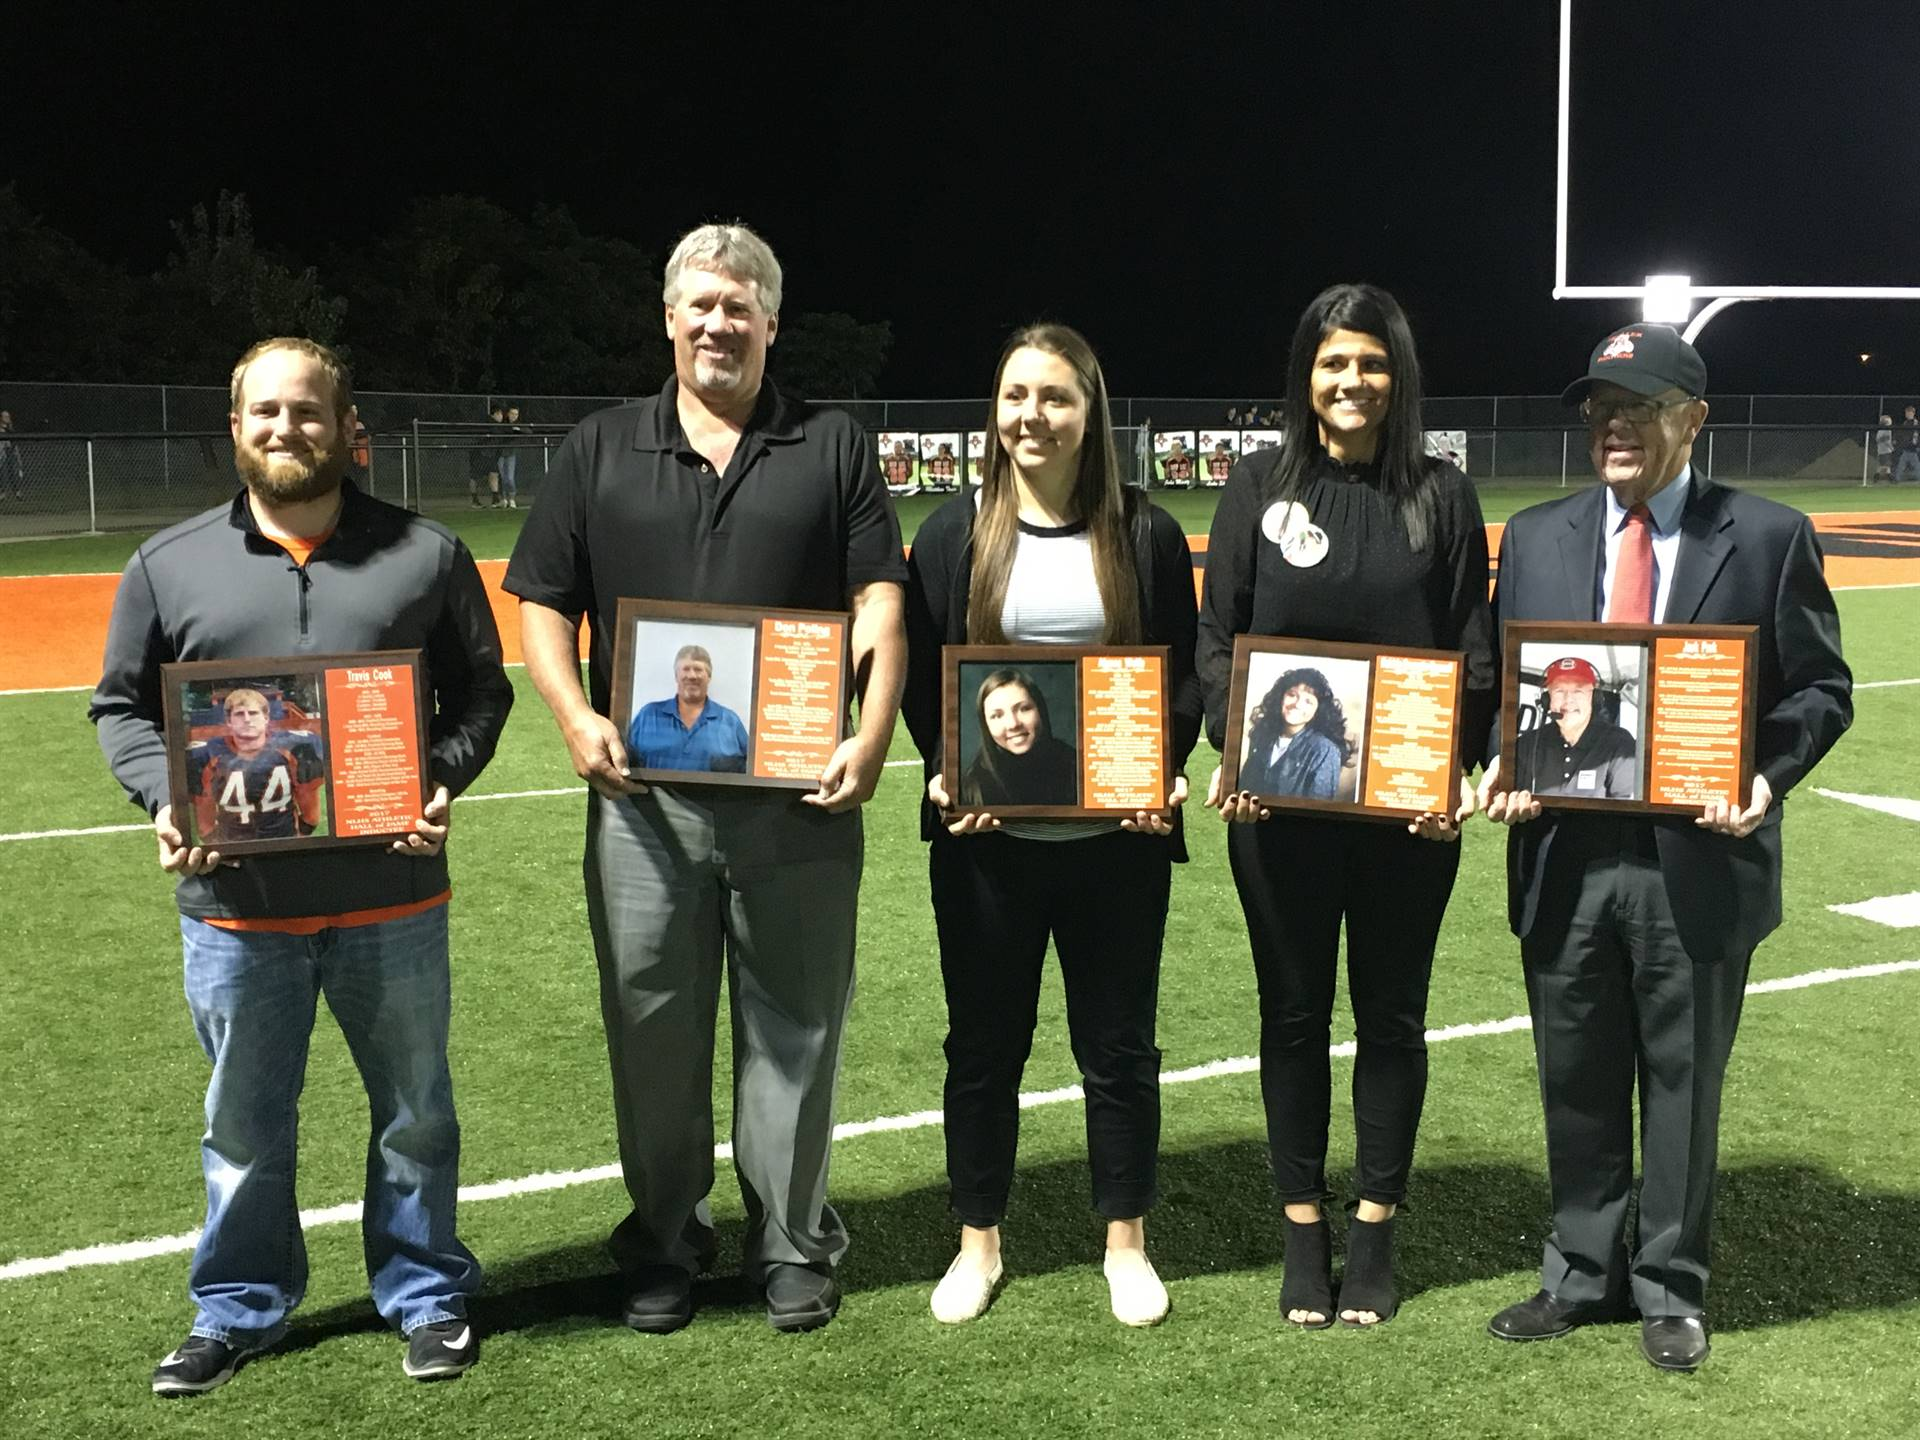 2017 Hall of Fame Inductees